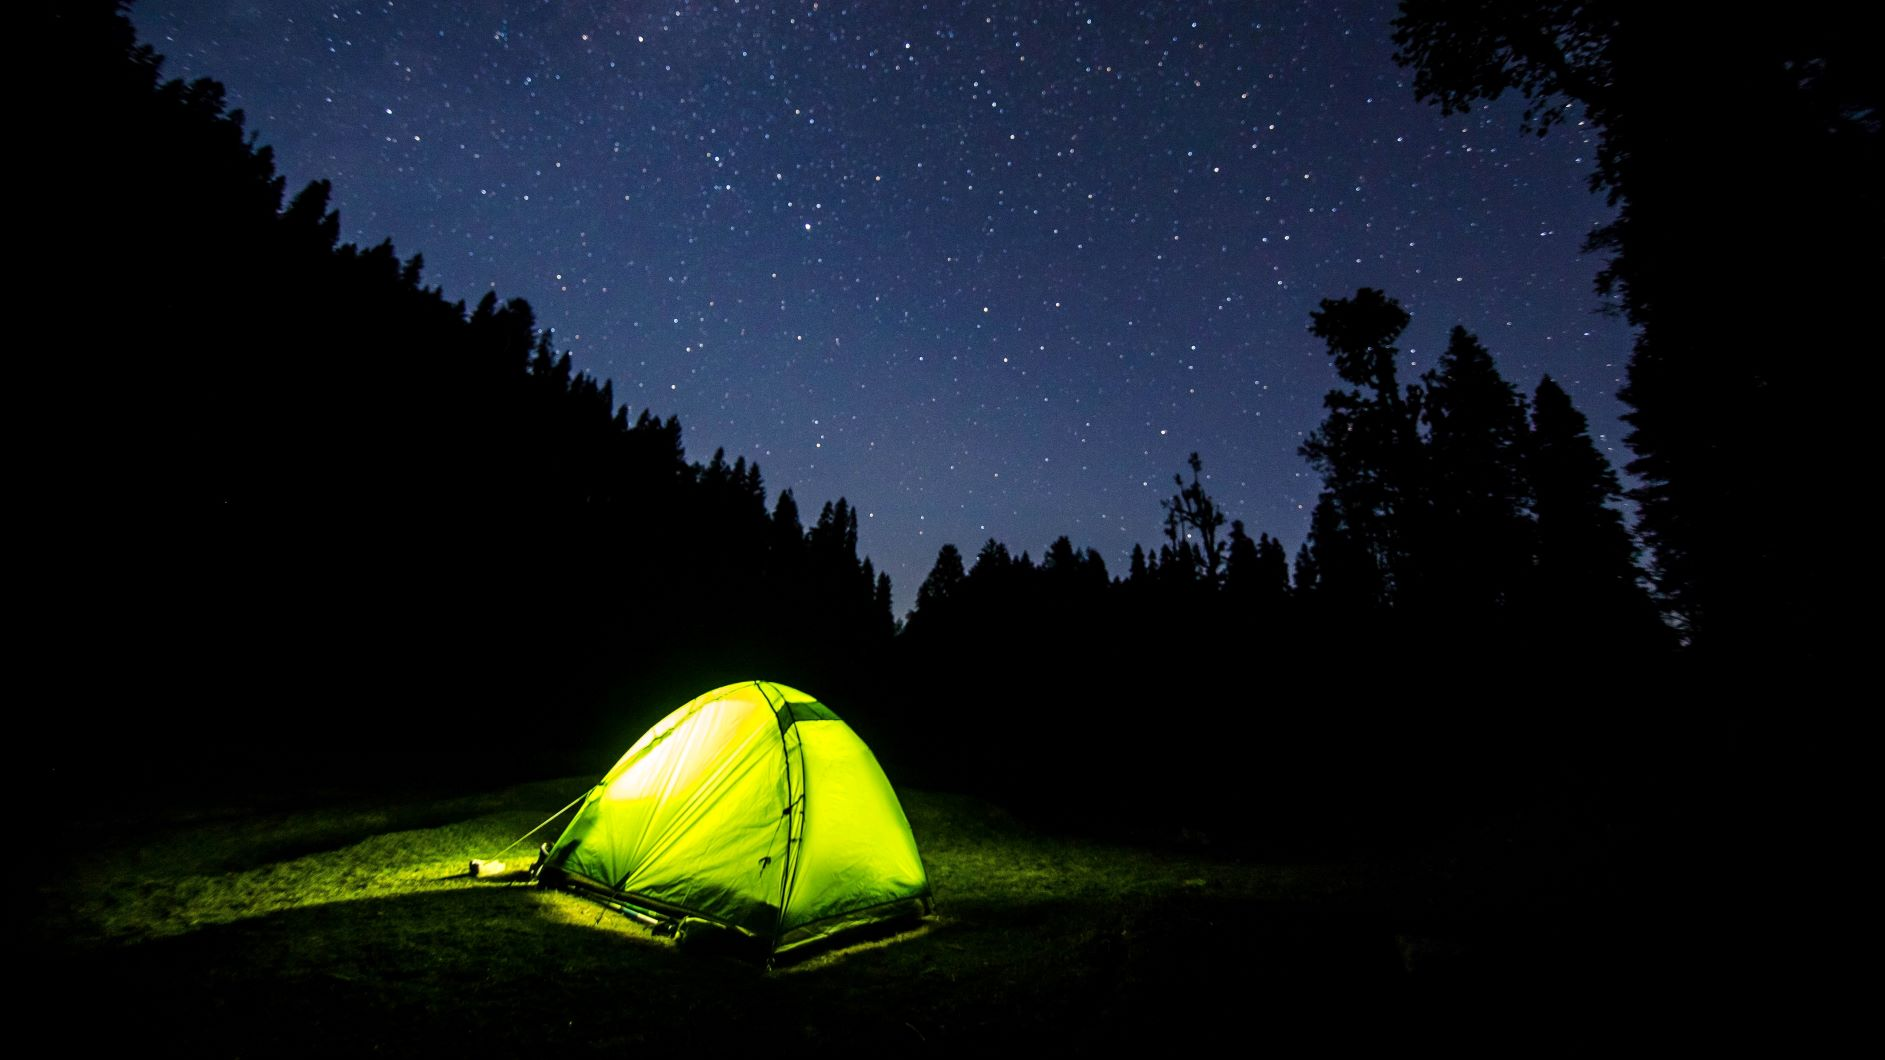 10 Best Camping Site to Reconnect With Nature